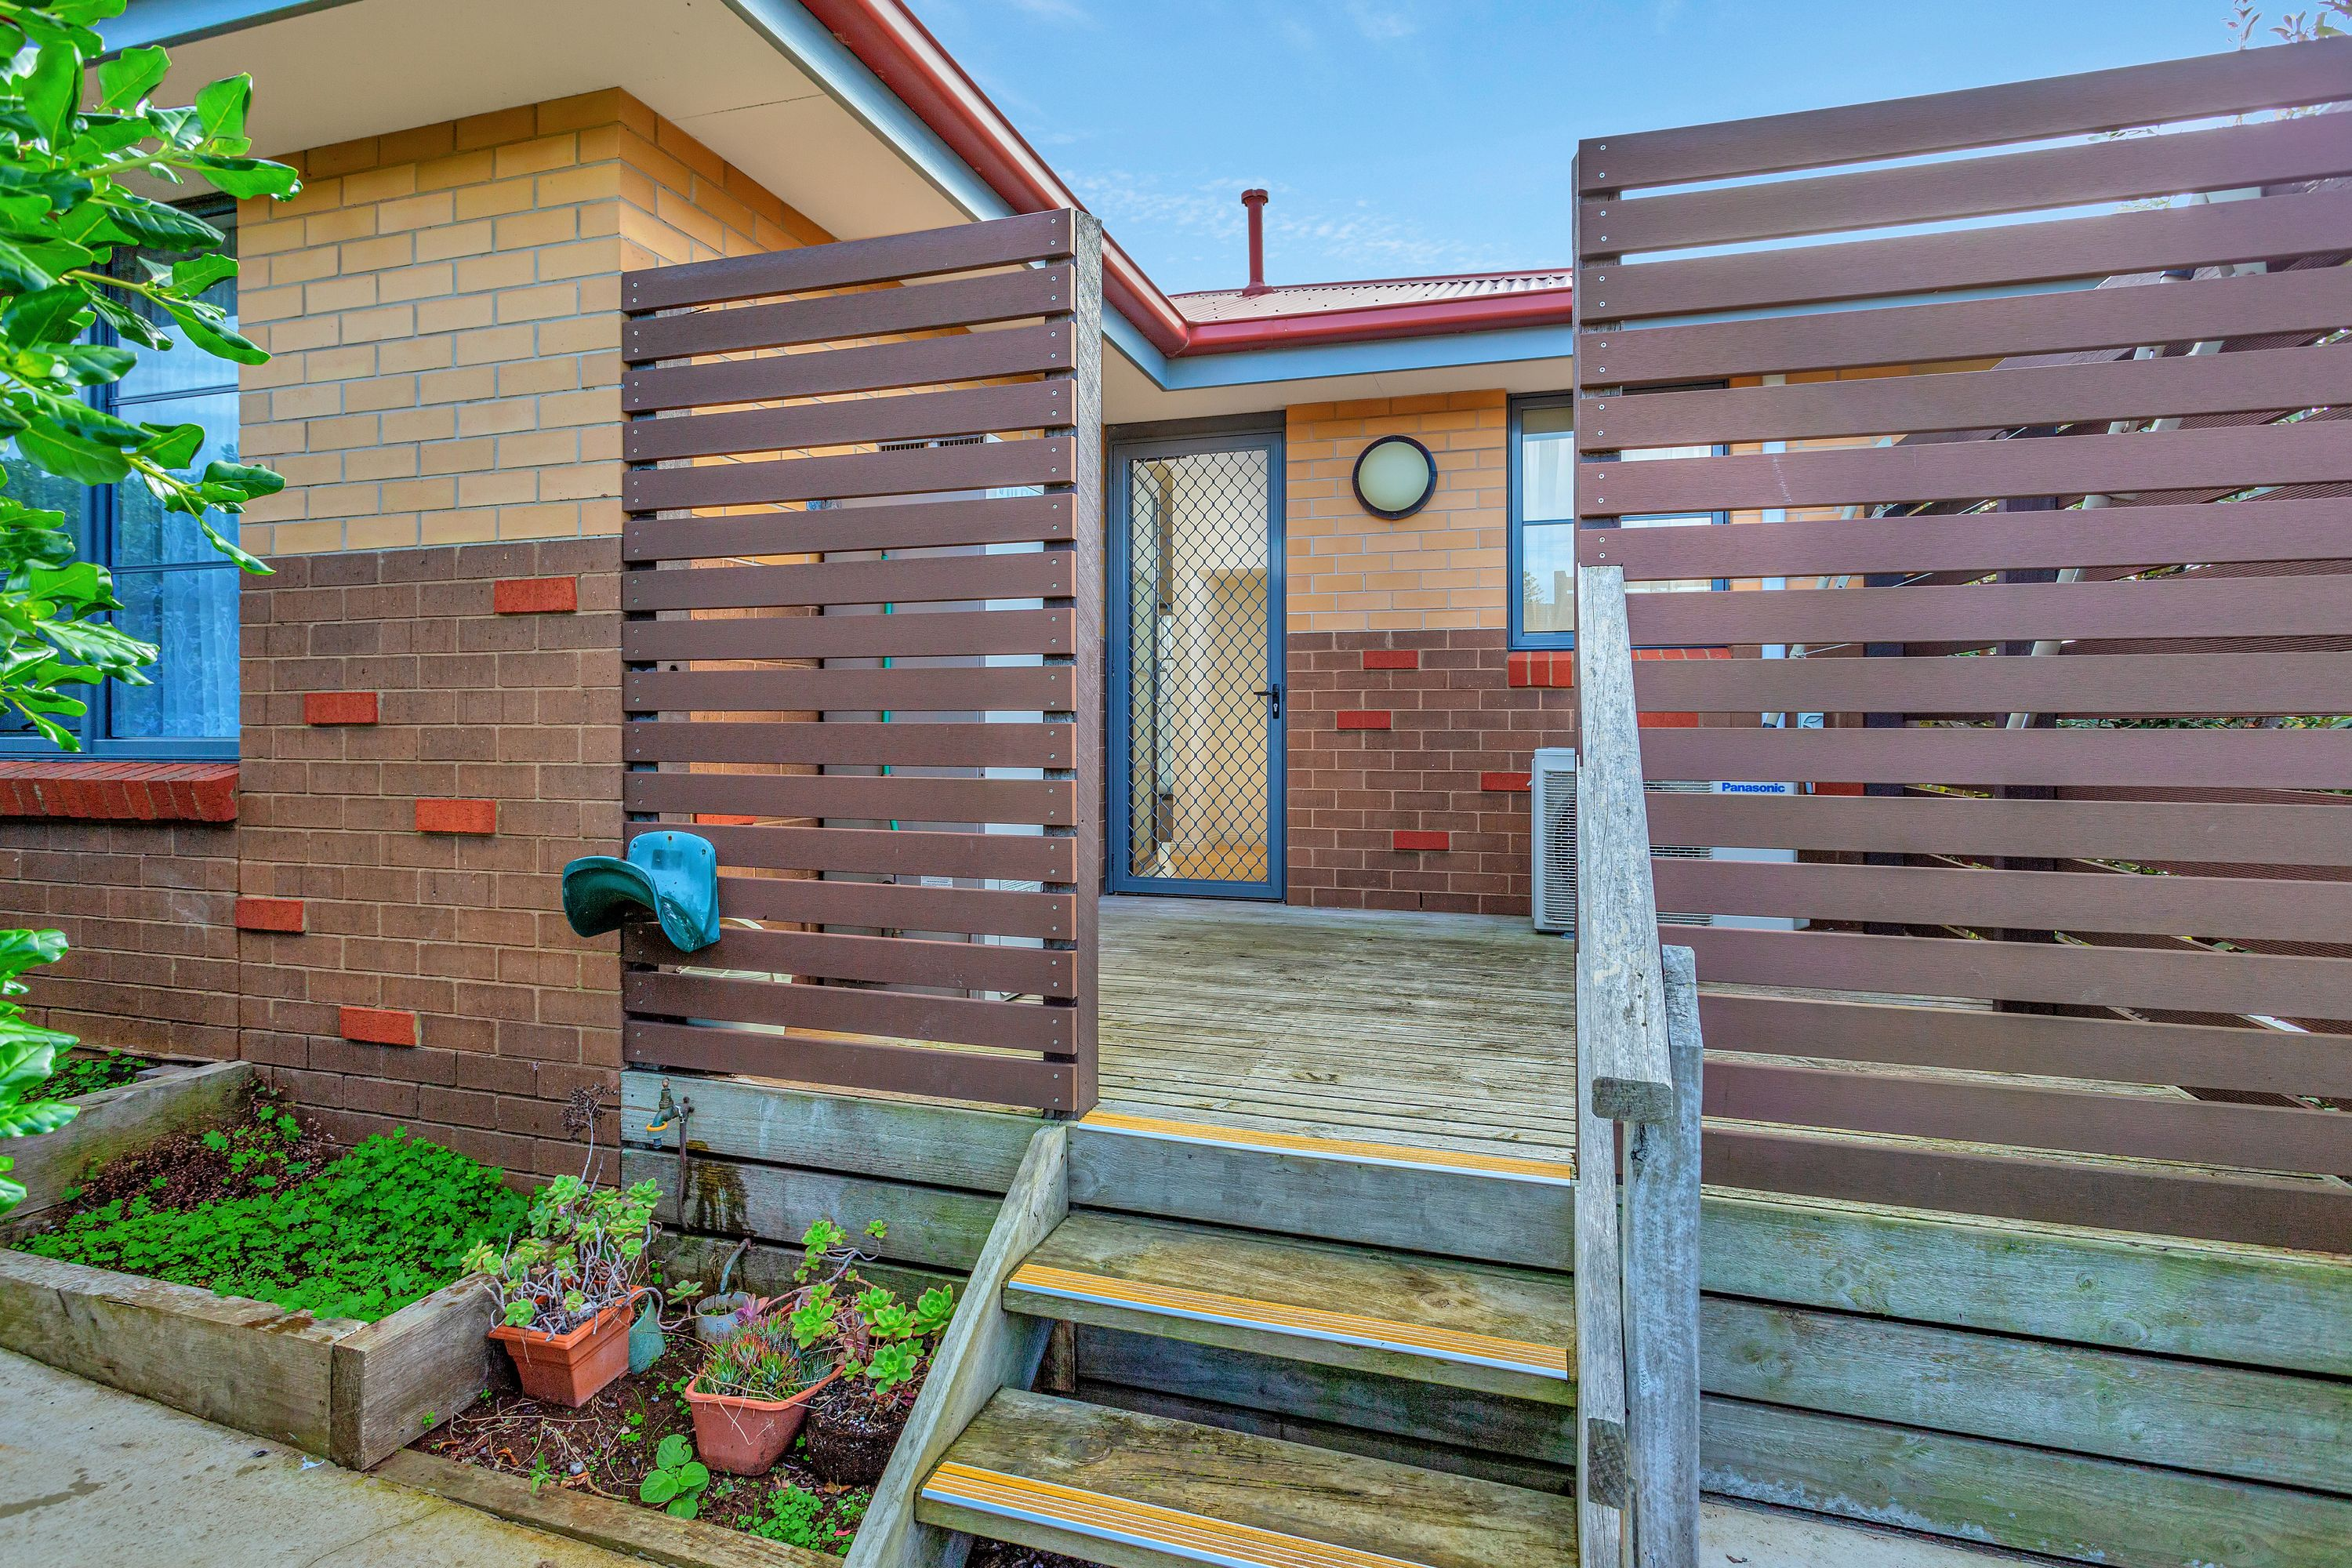 8/10 Marfell Road, Warrnambool, VIC 3280